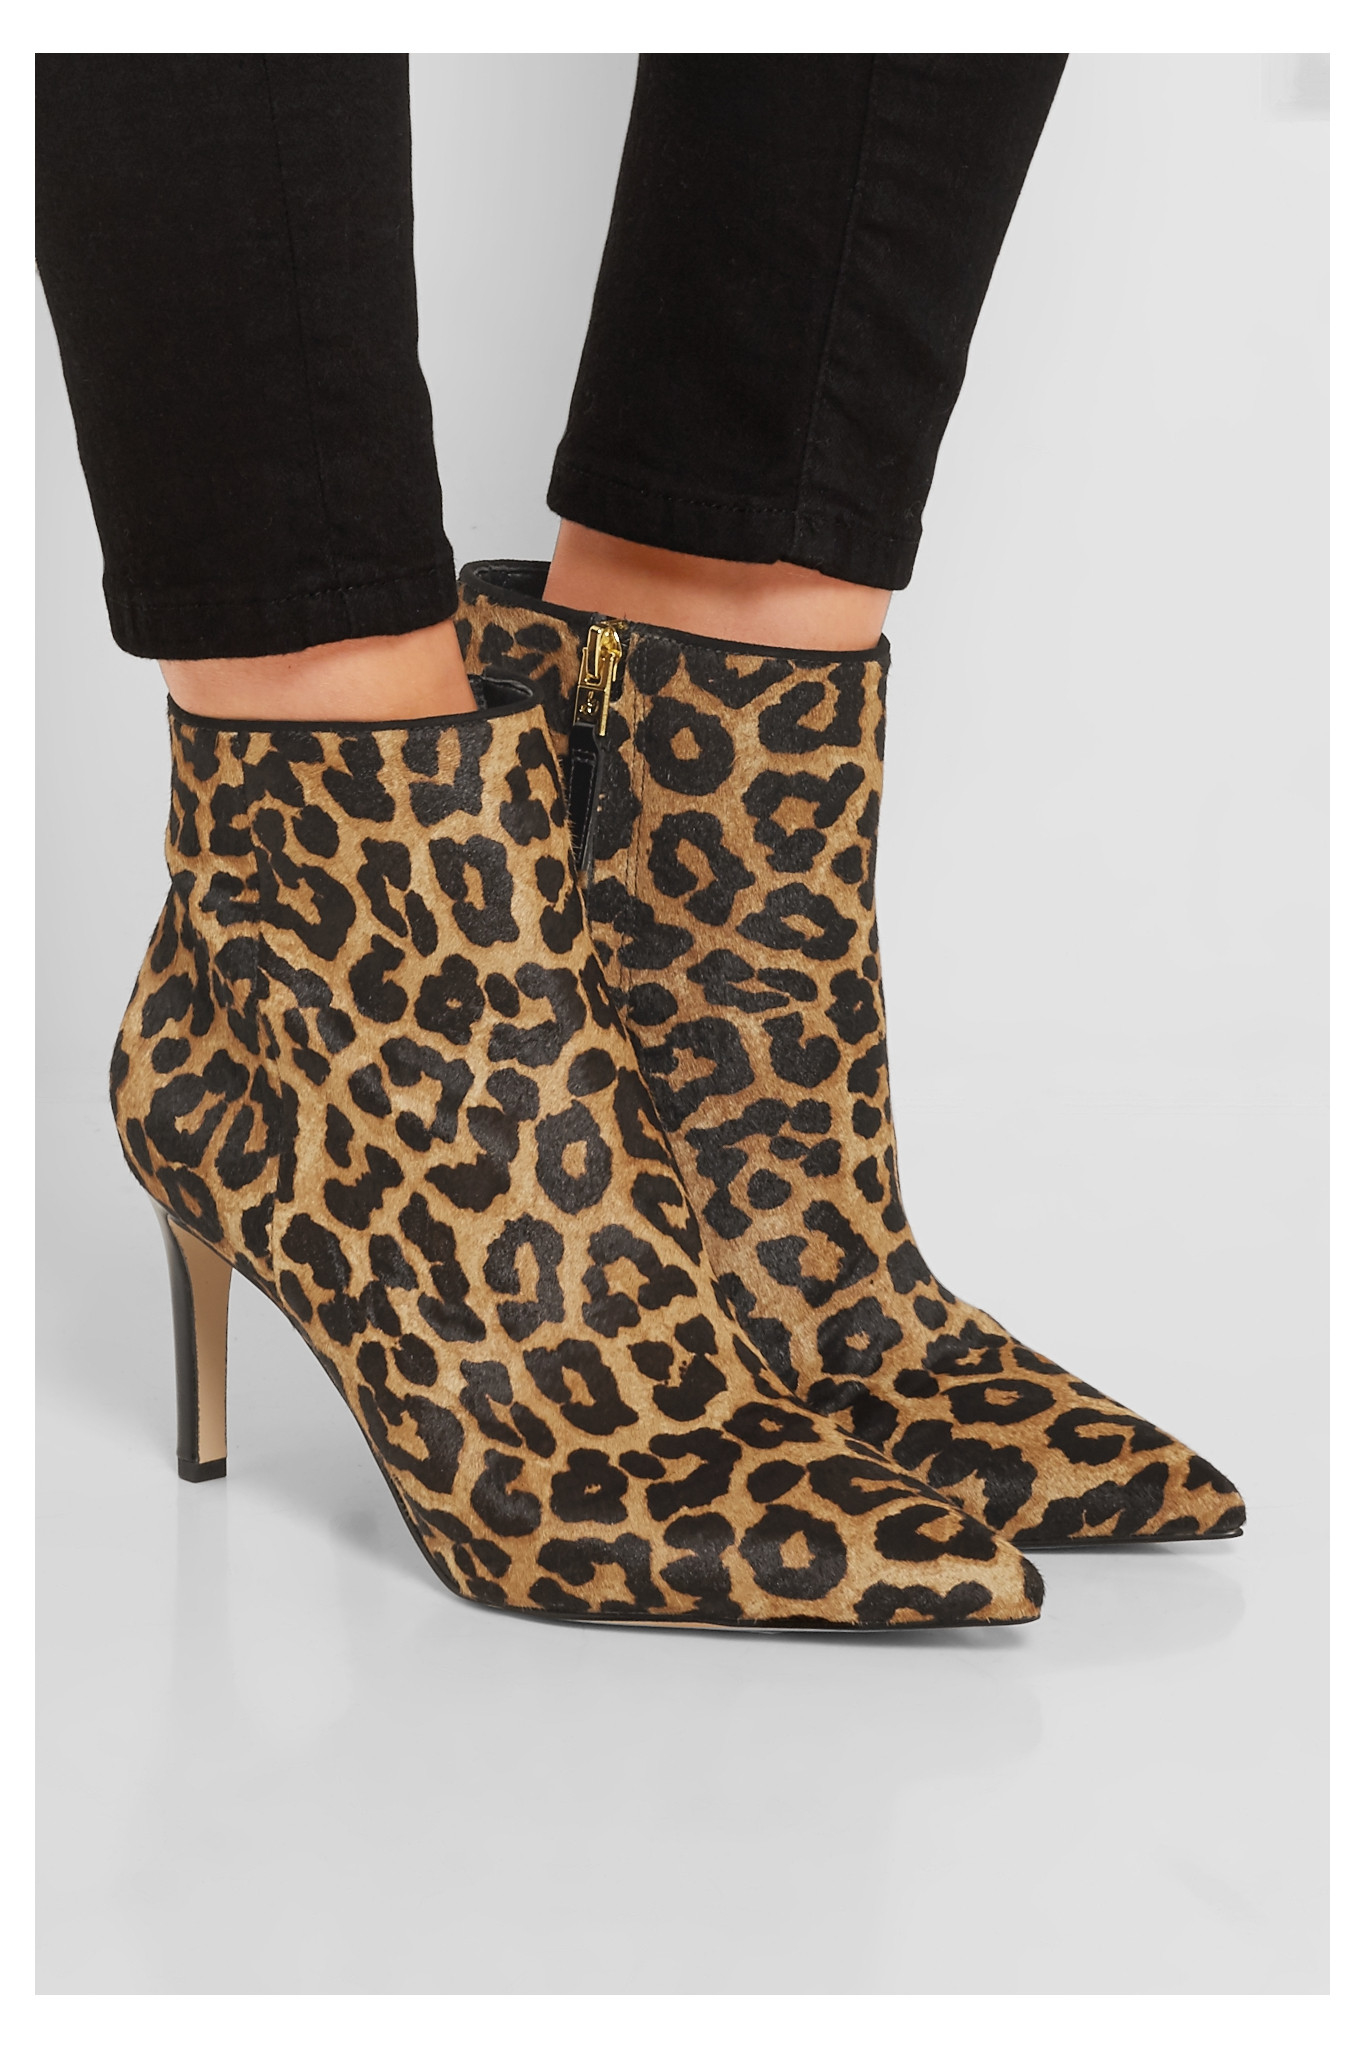 c755f629d7dd Lyst - Sam Edelman Karen Leopard-print Calf Hair Ankle Boots in Brown